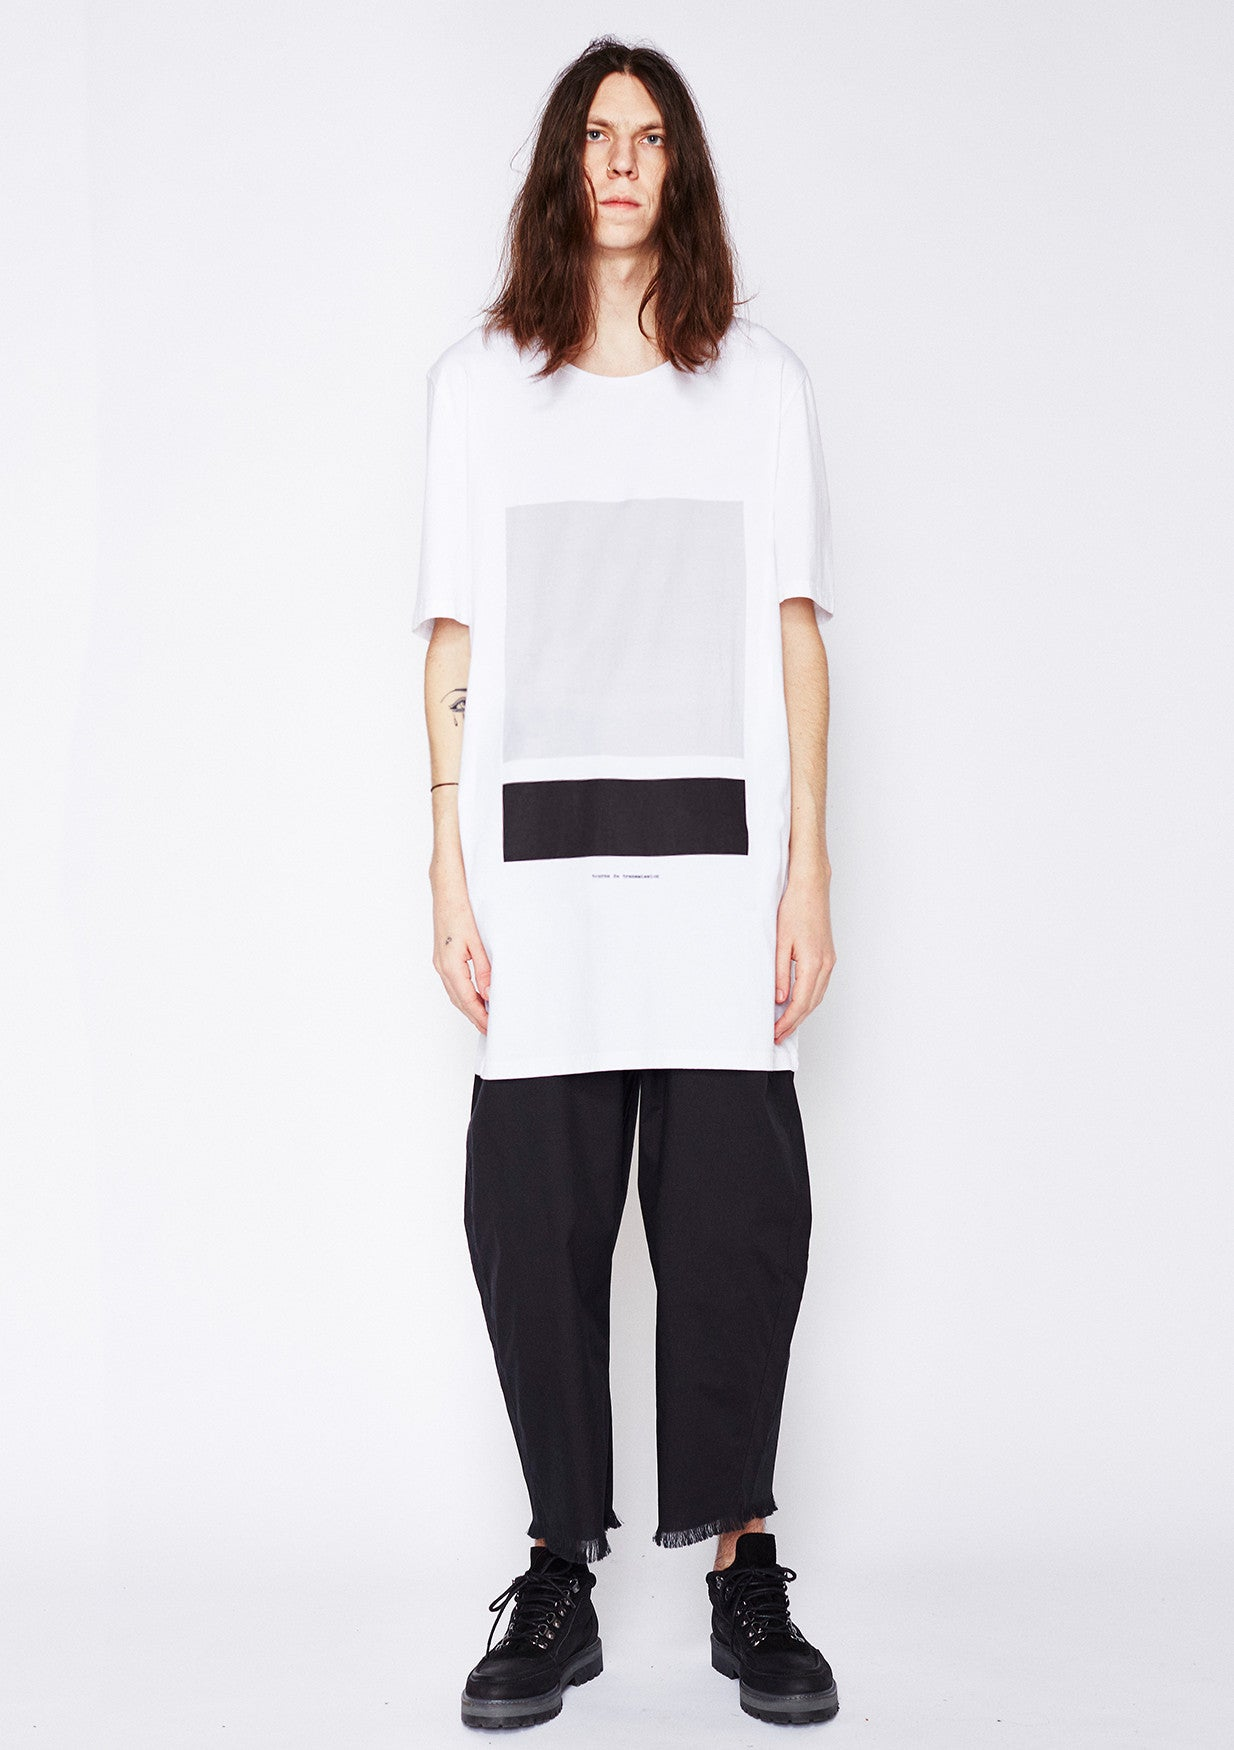 Split box Tee - Black, Grey